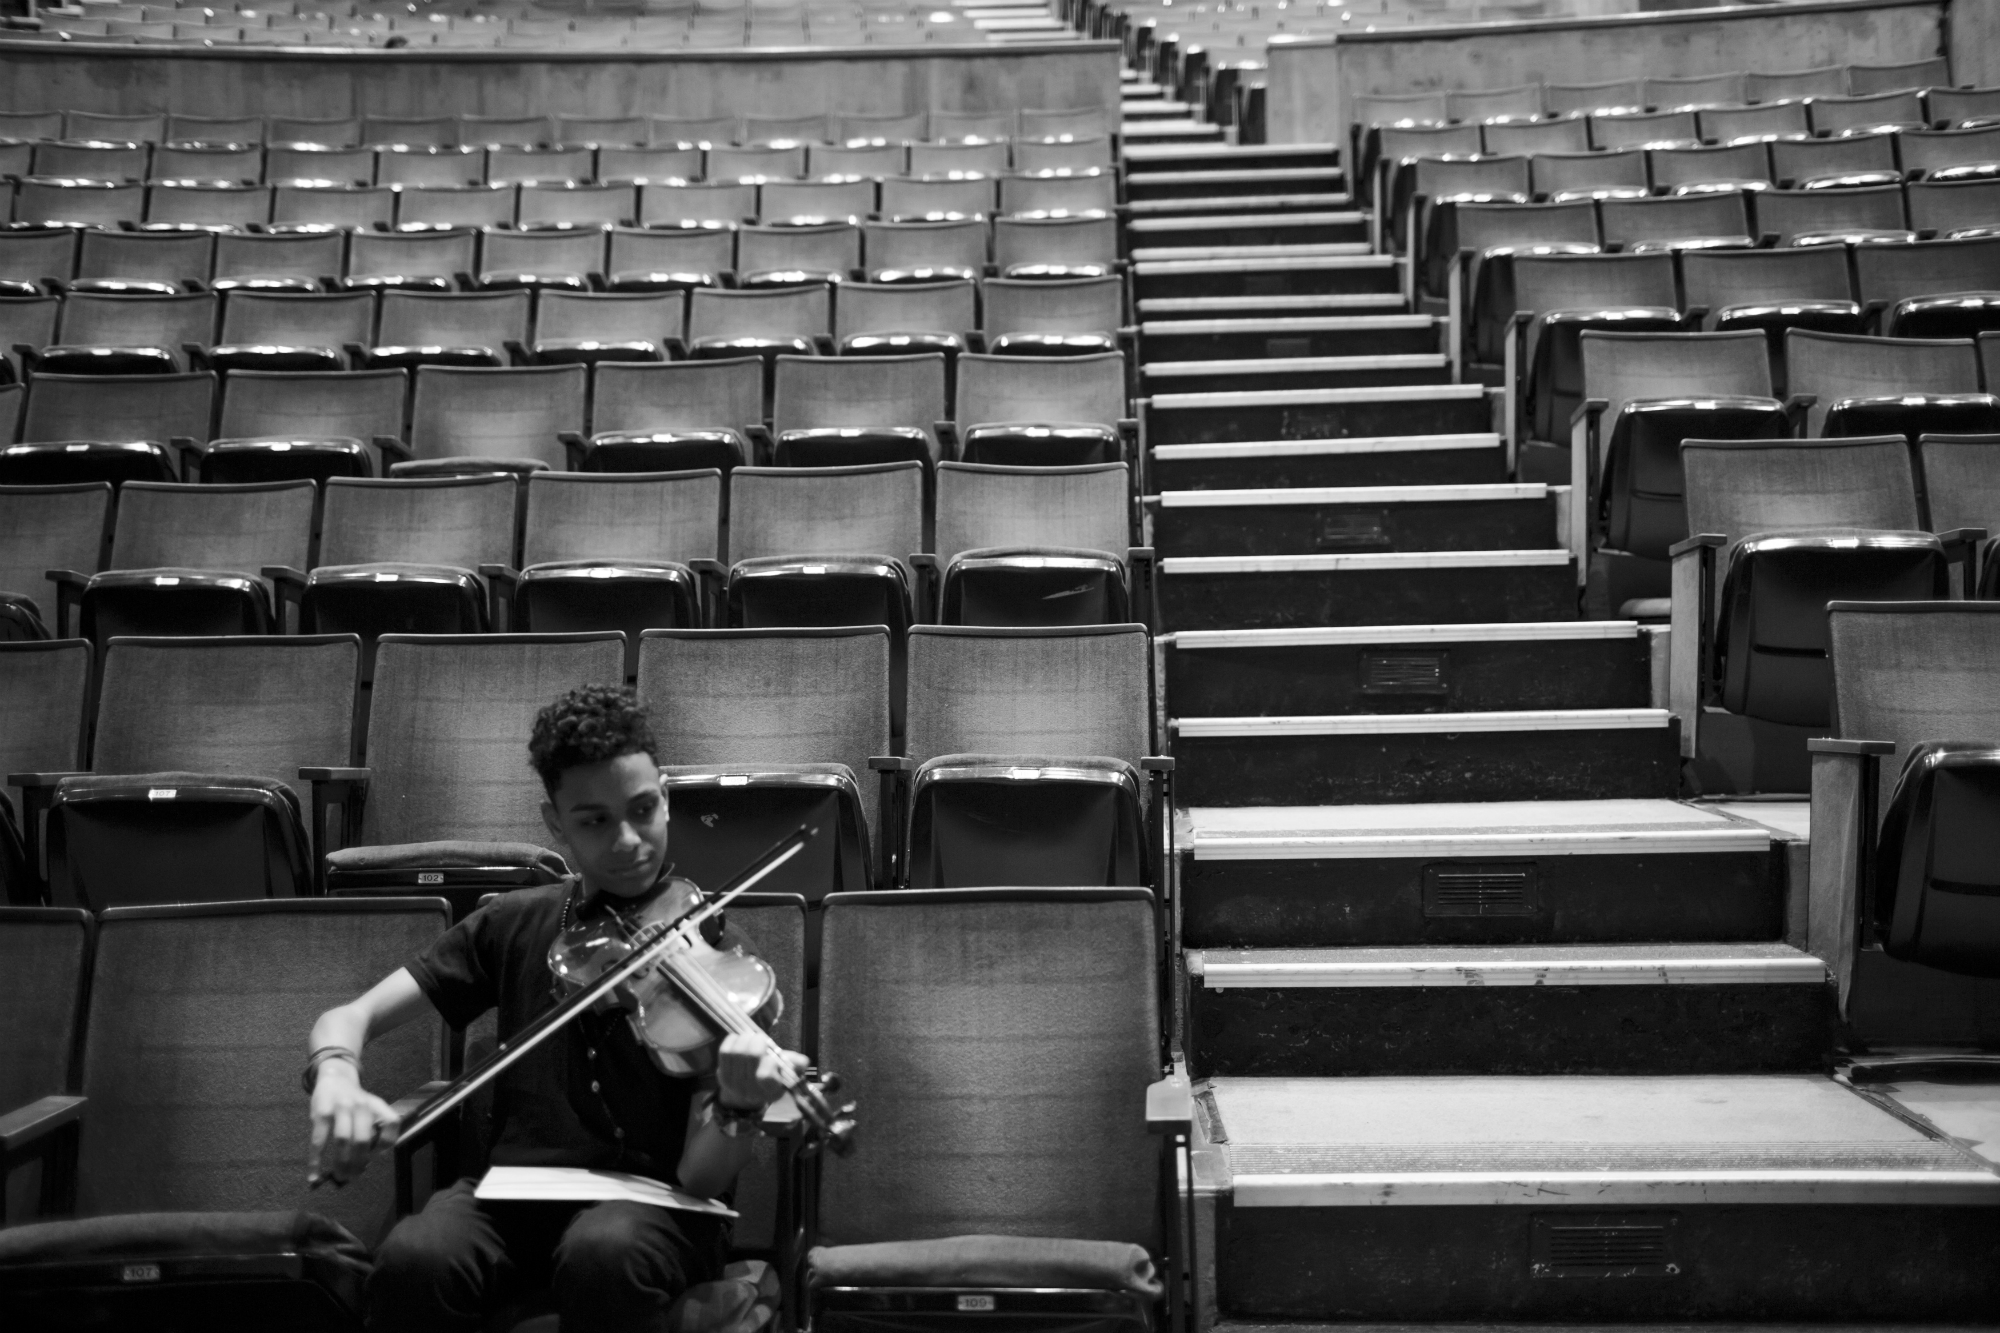 Chavi Leon practices violin before a concert, directed by Professor Kim Cai, at the High School of Violin and Dance, May 12, 2016, Lehman College, Bronx, New York. Following practice, the students will perform their year-end concert for the public. (Photo by Sarah Blesener/GroundTruth/Alexia Foundation)